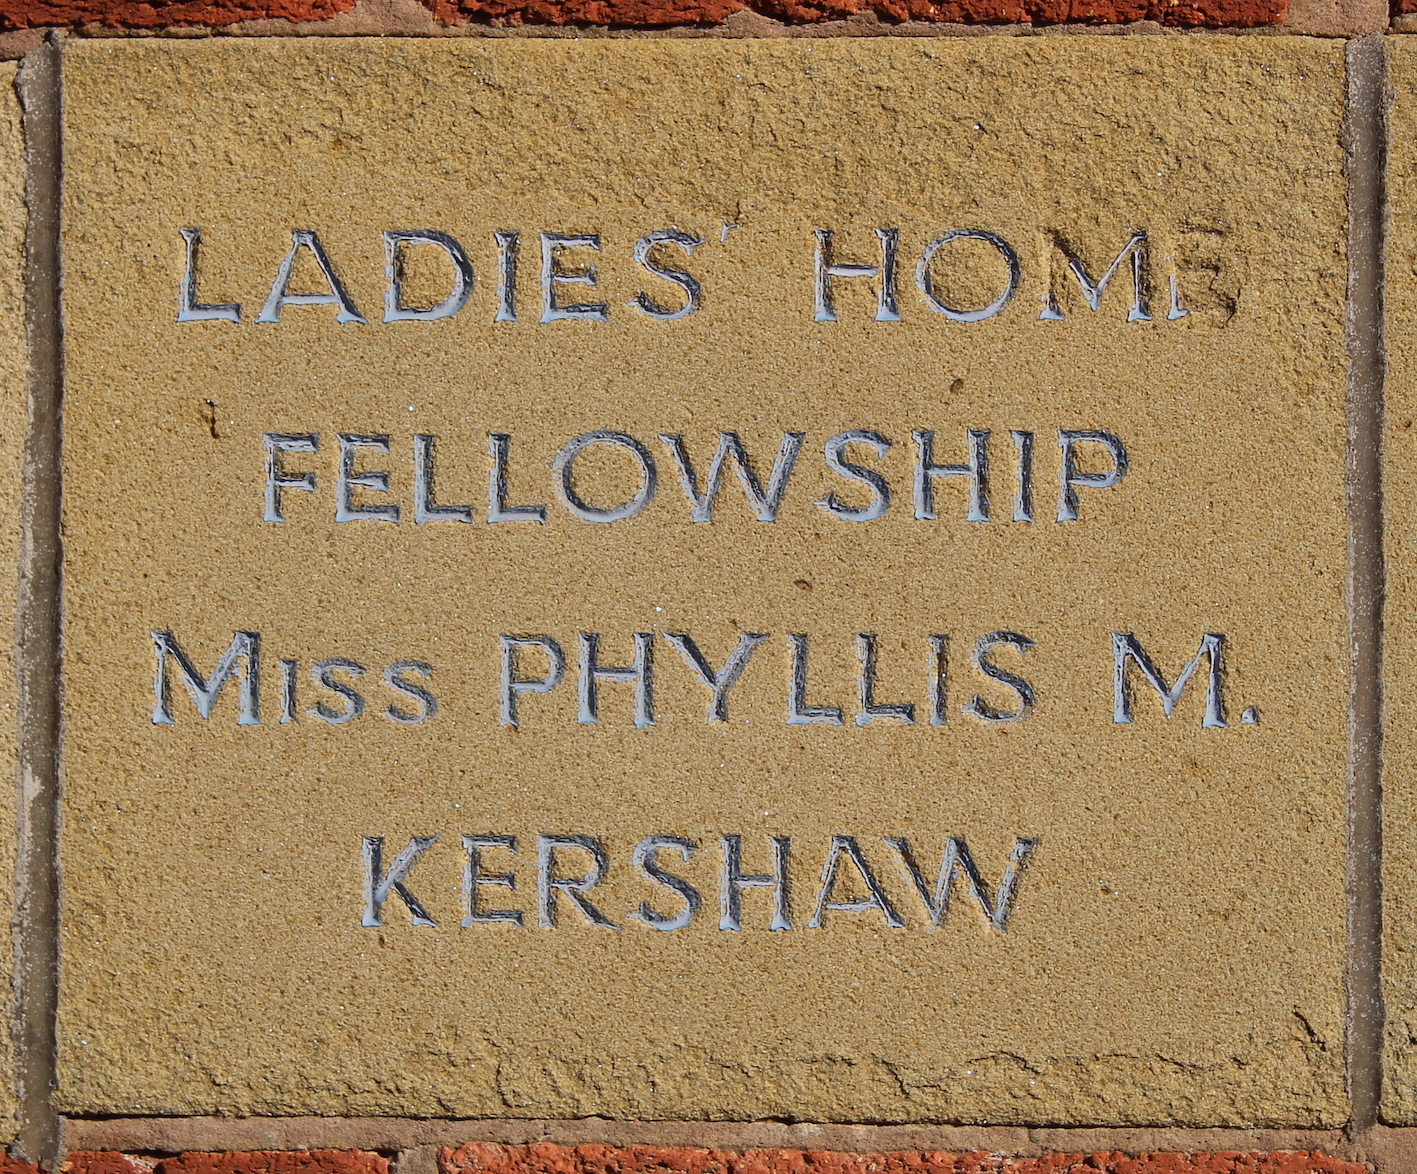 Memorial stone laid by Miss Phyllis M Kershaw